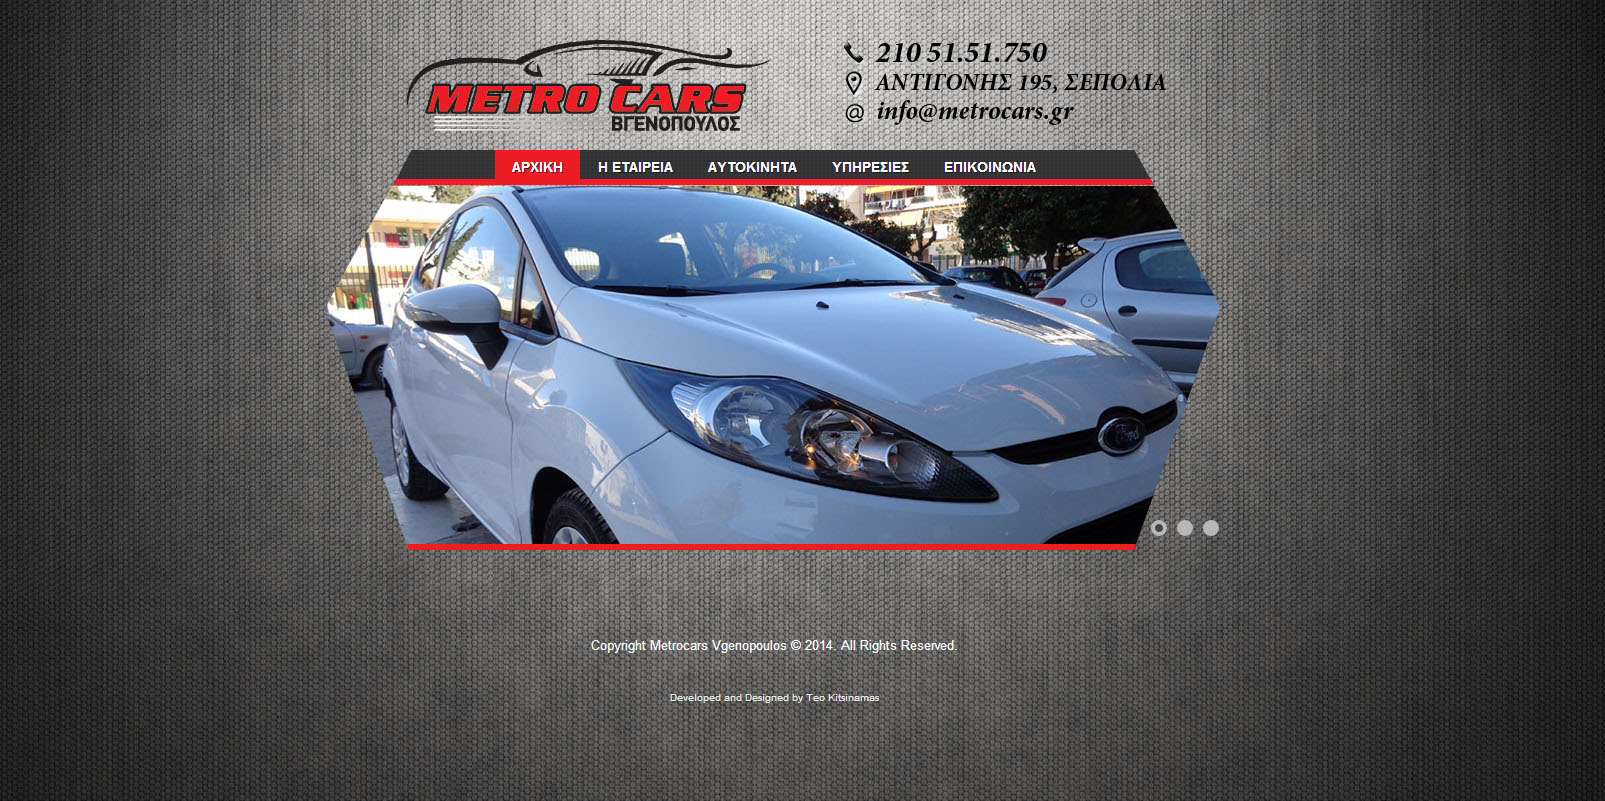 Metrocars Website